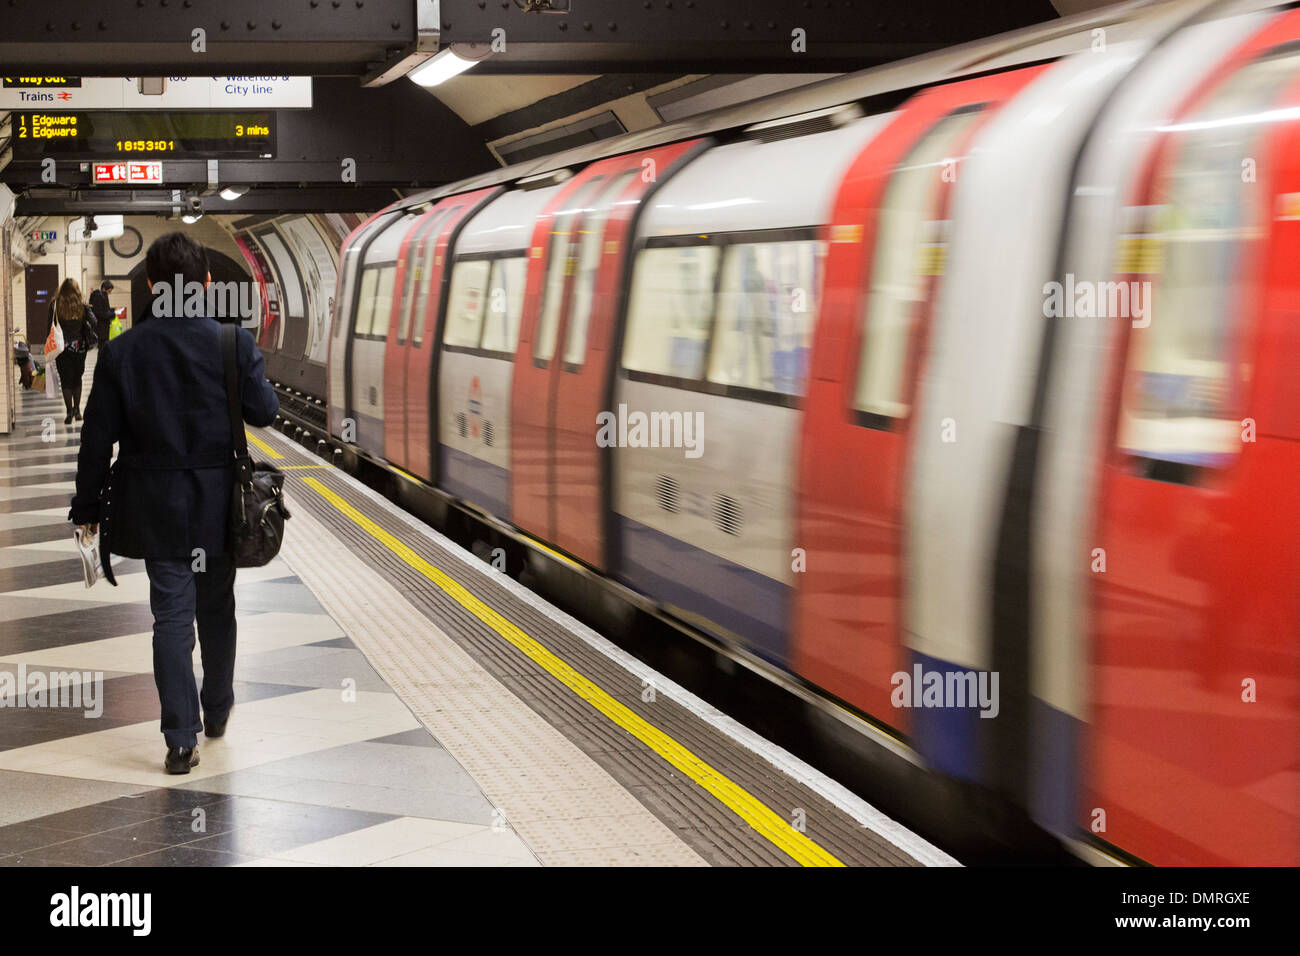 Person walking down the platform on a London Underground tube station. - Stock Image